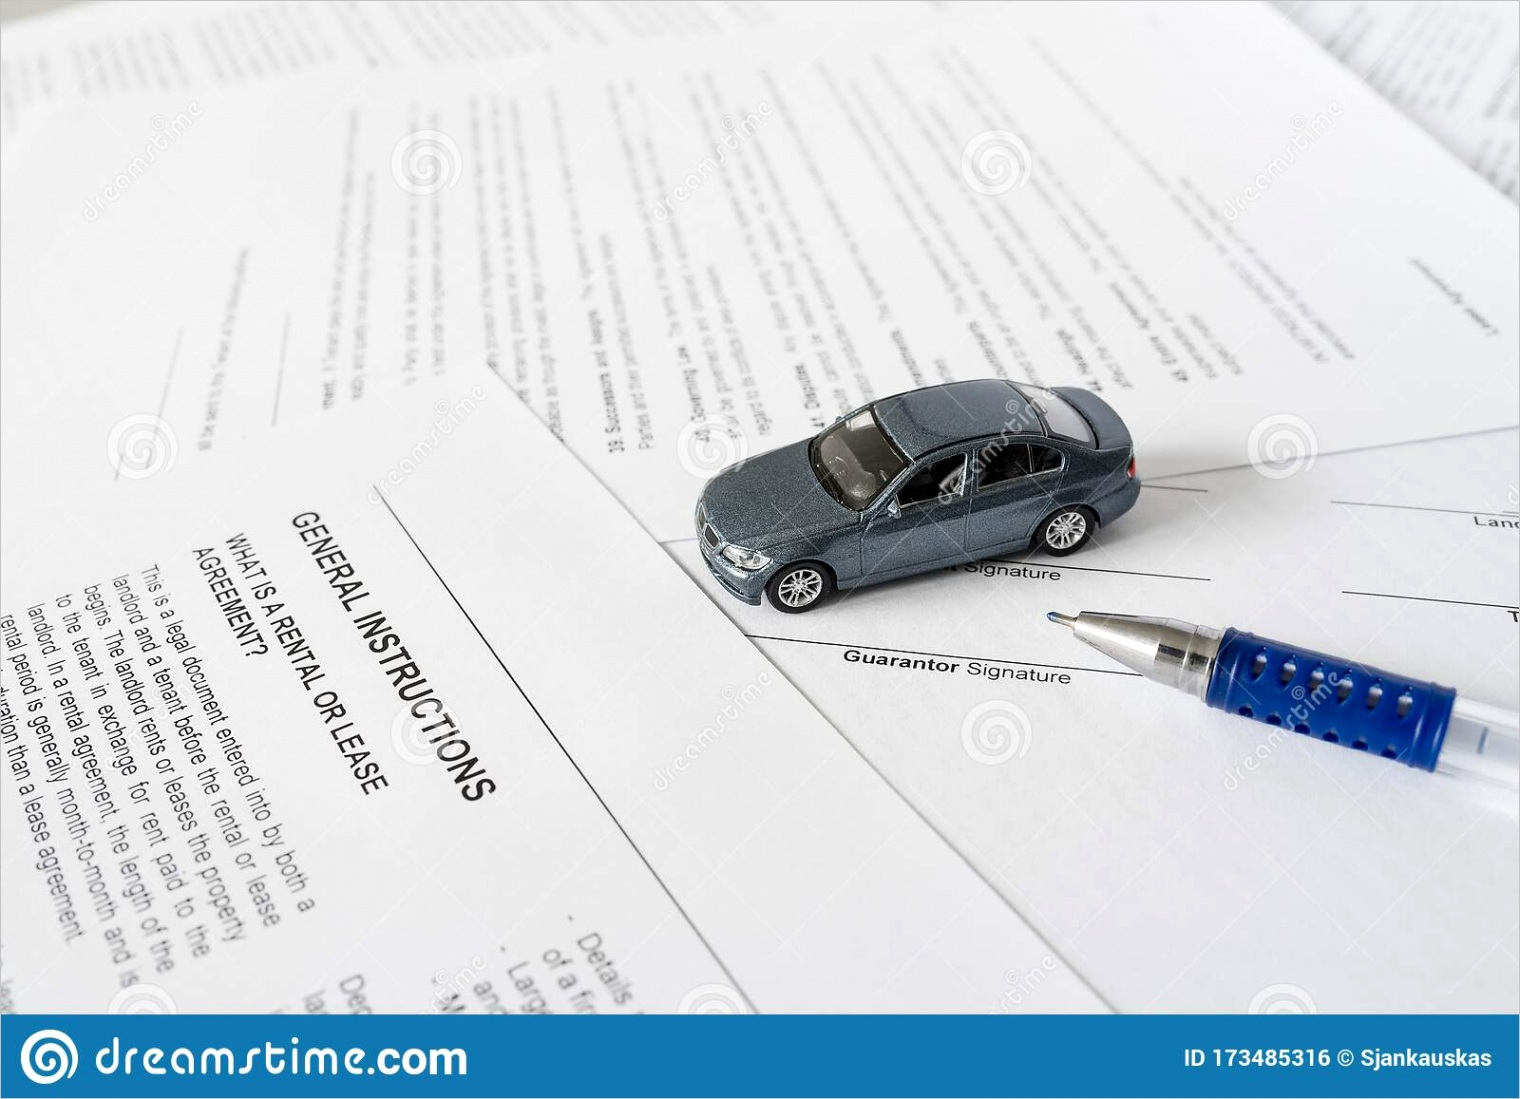 car leasing general agreement terms concept image toy car lease agreement template concept image renting service costs image